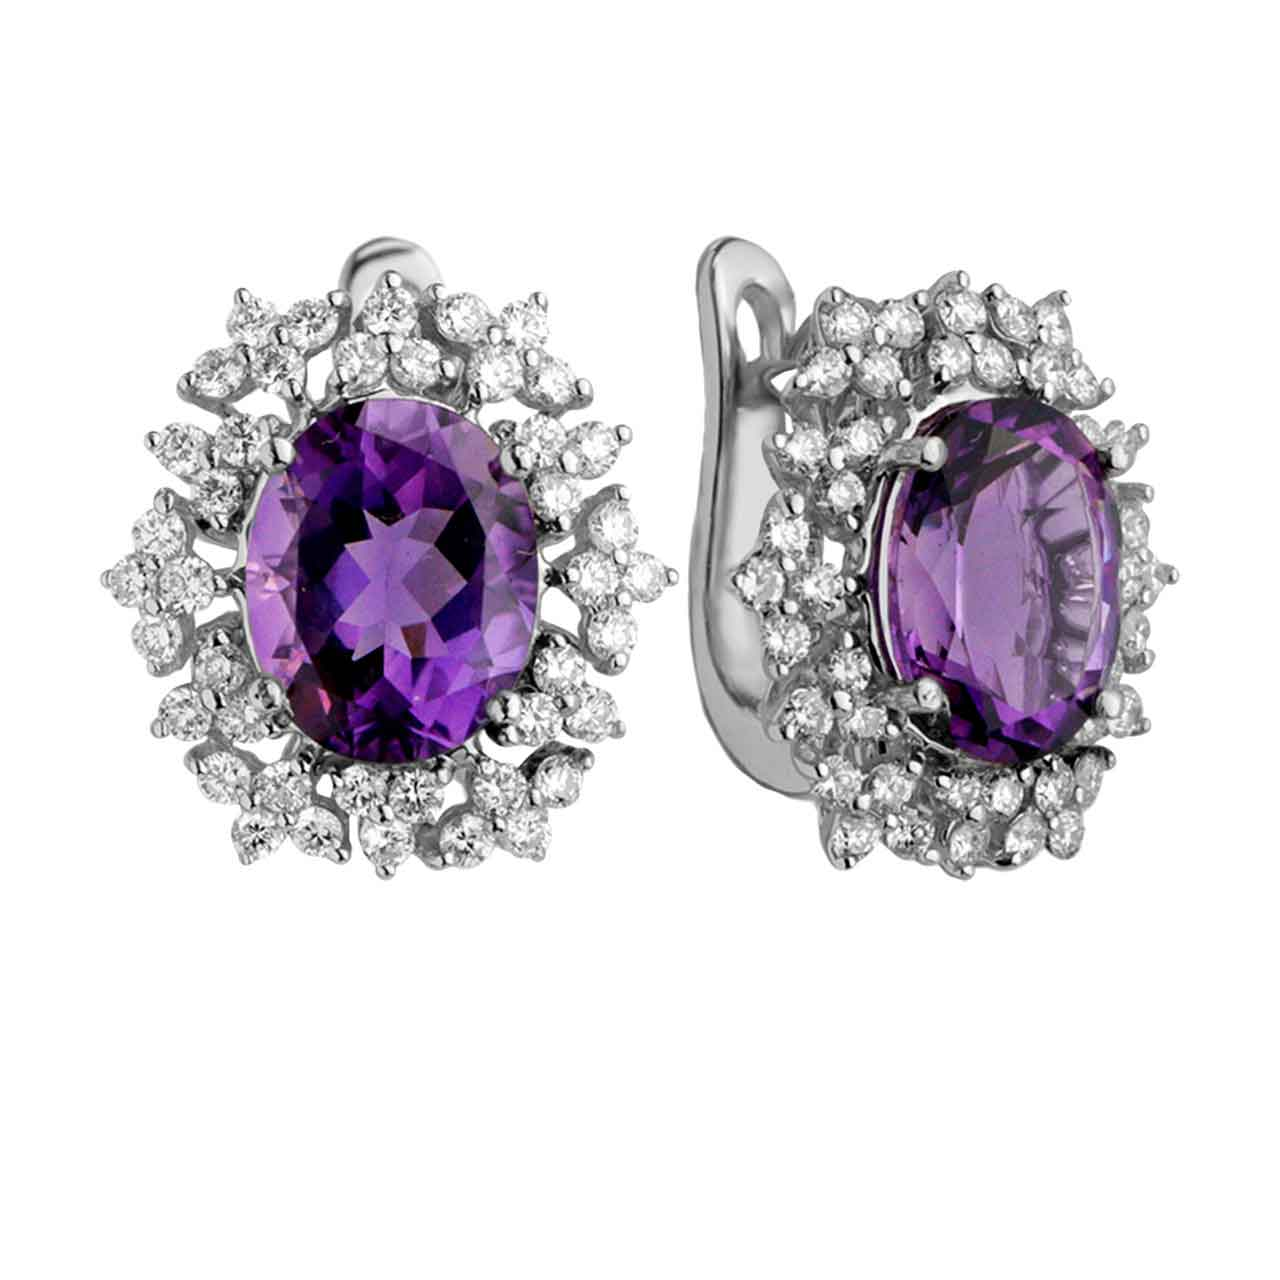 Oval Amethyst with Diamond Cluster Earrings